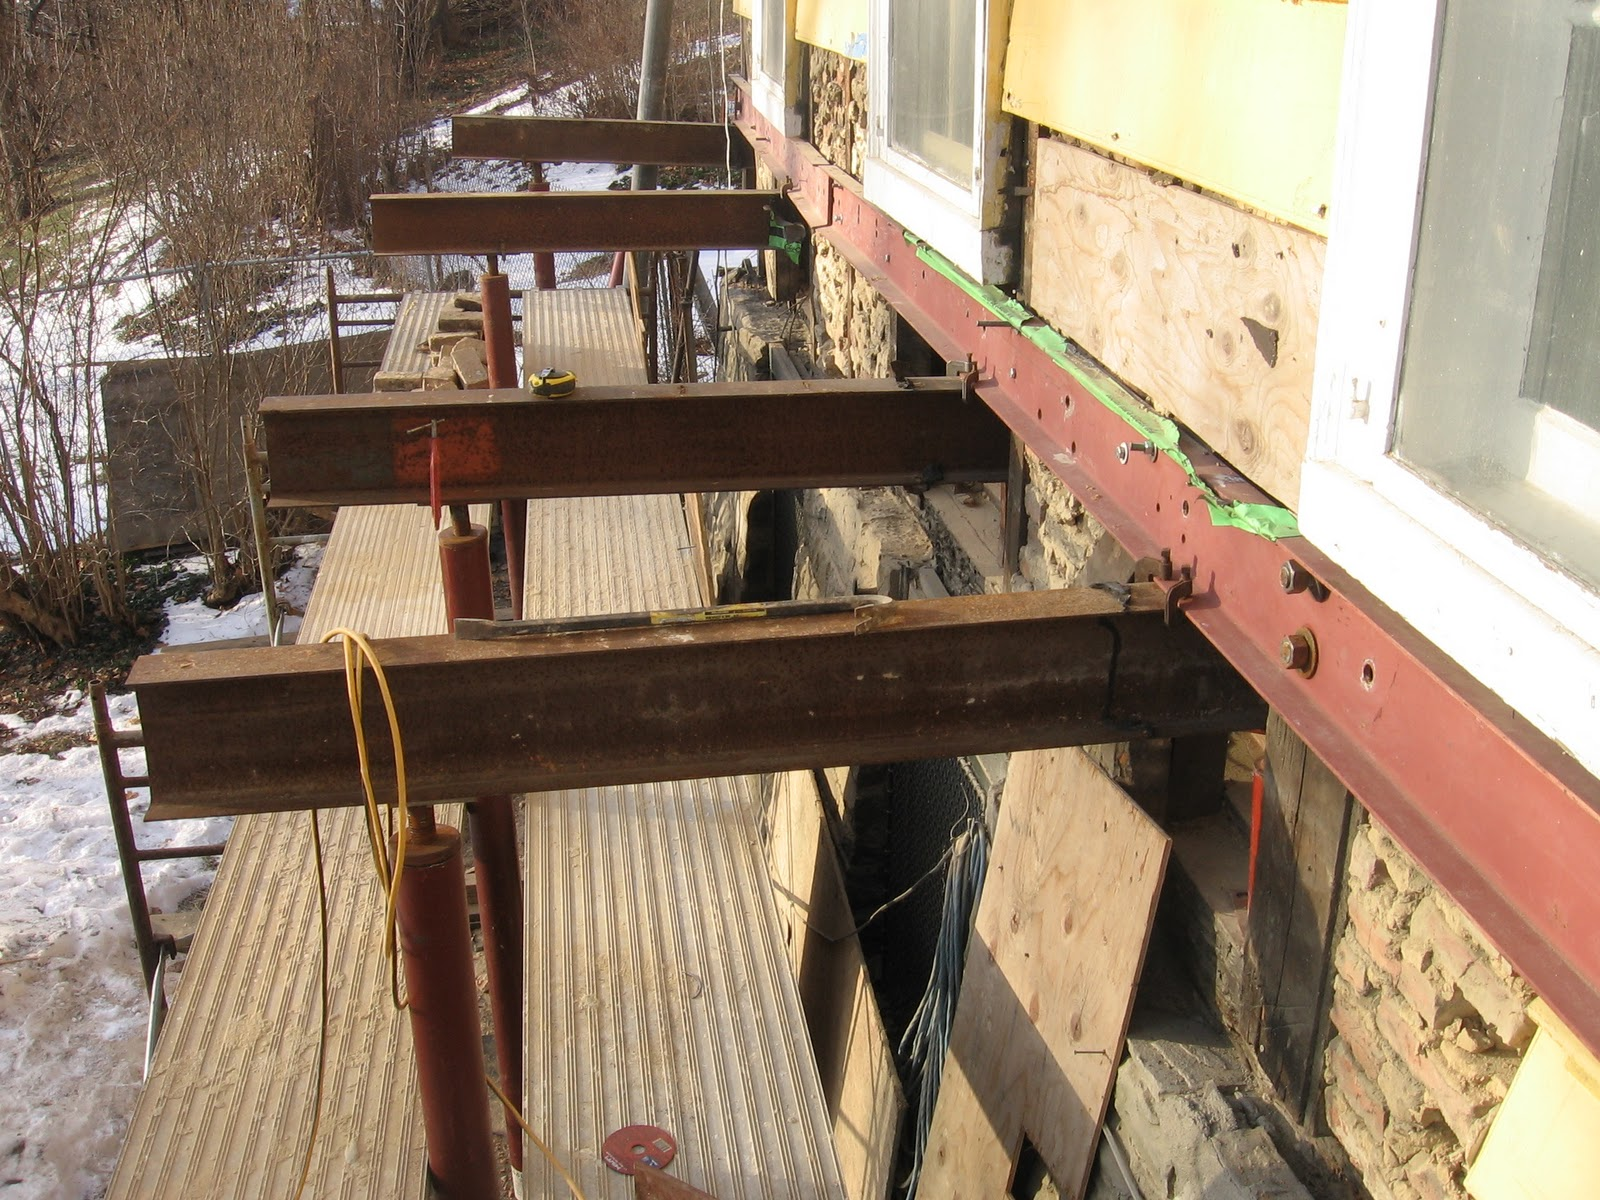 Needle Beam Shoring For Wall : The ultimate home improvement project january